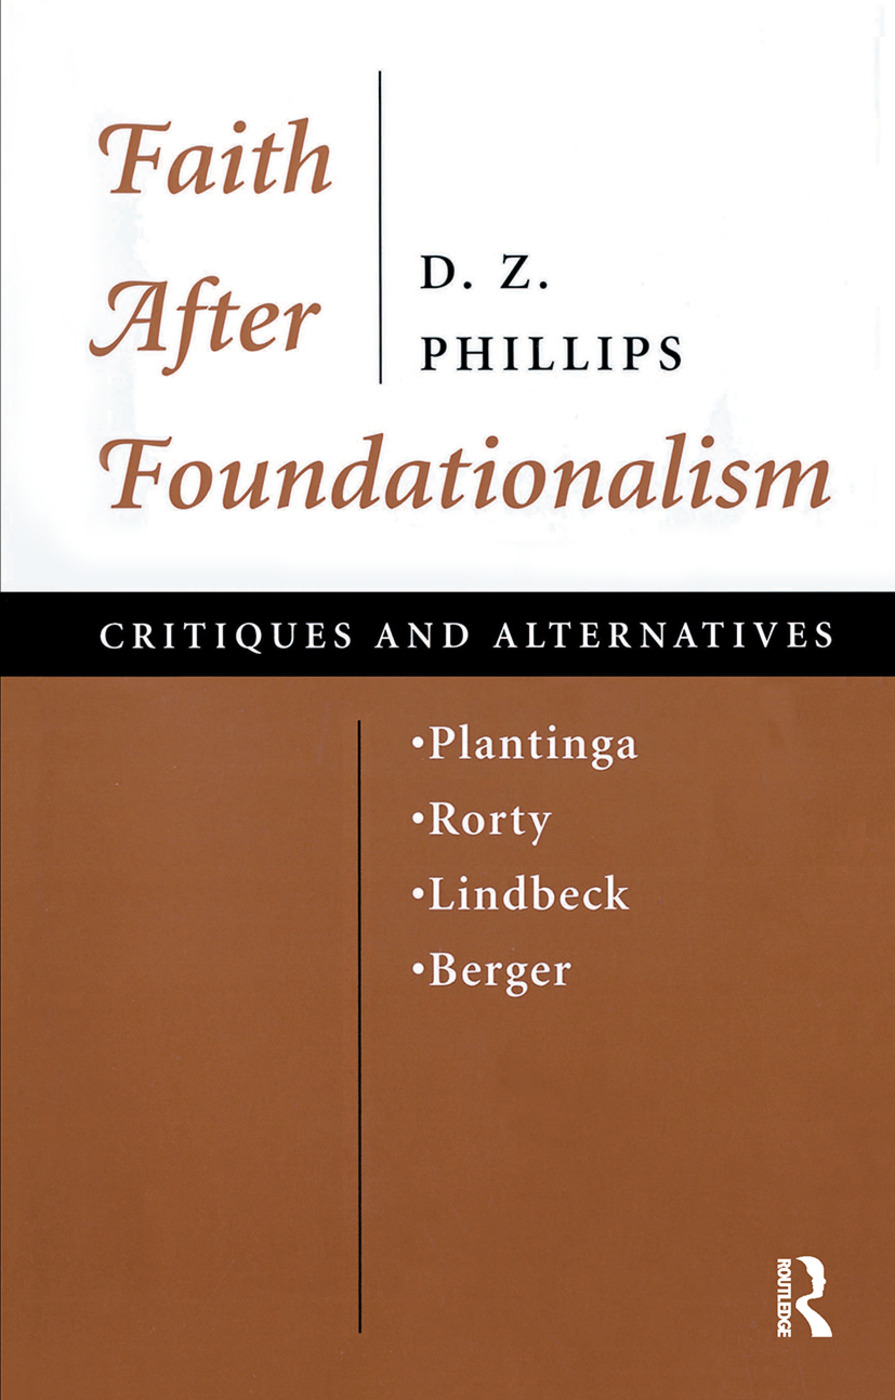 Faith After Foundationalism: Plantinga-rorty-lindbeck-berger-- Critiques And Alternatives, 1st Edition (Hardback) book cover